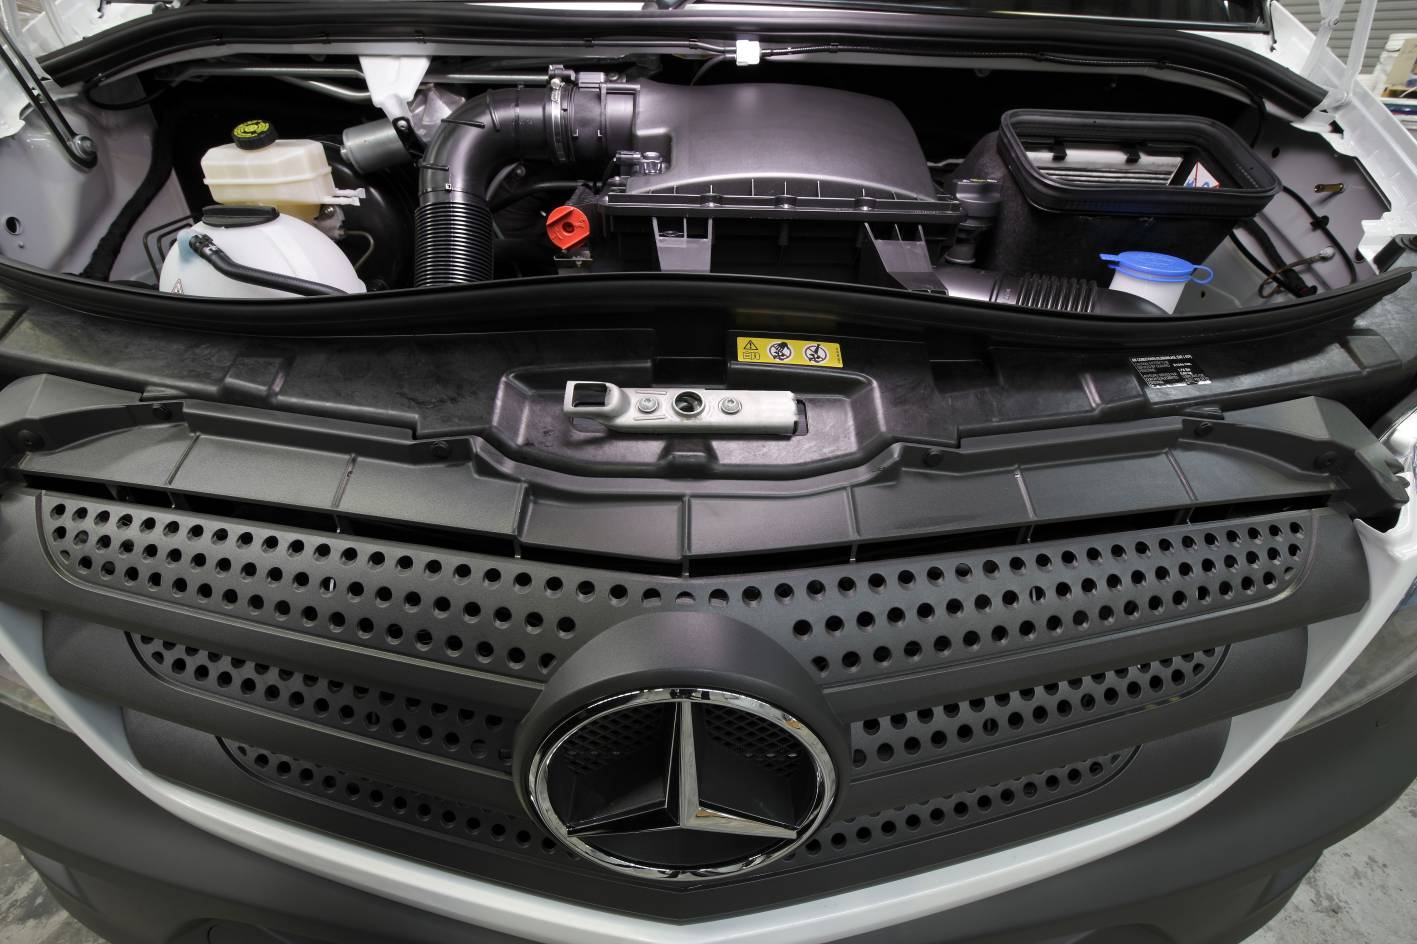 The Truth About Modern Diesel Particulate Filter (DPF) Problems